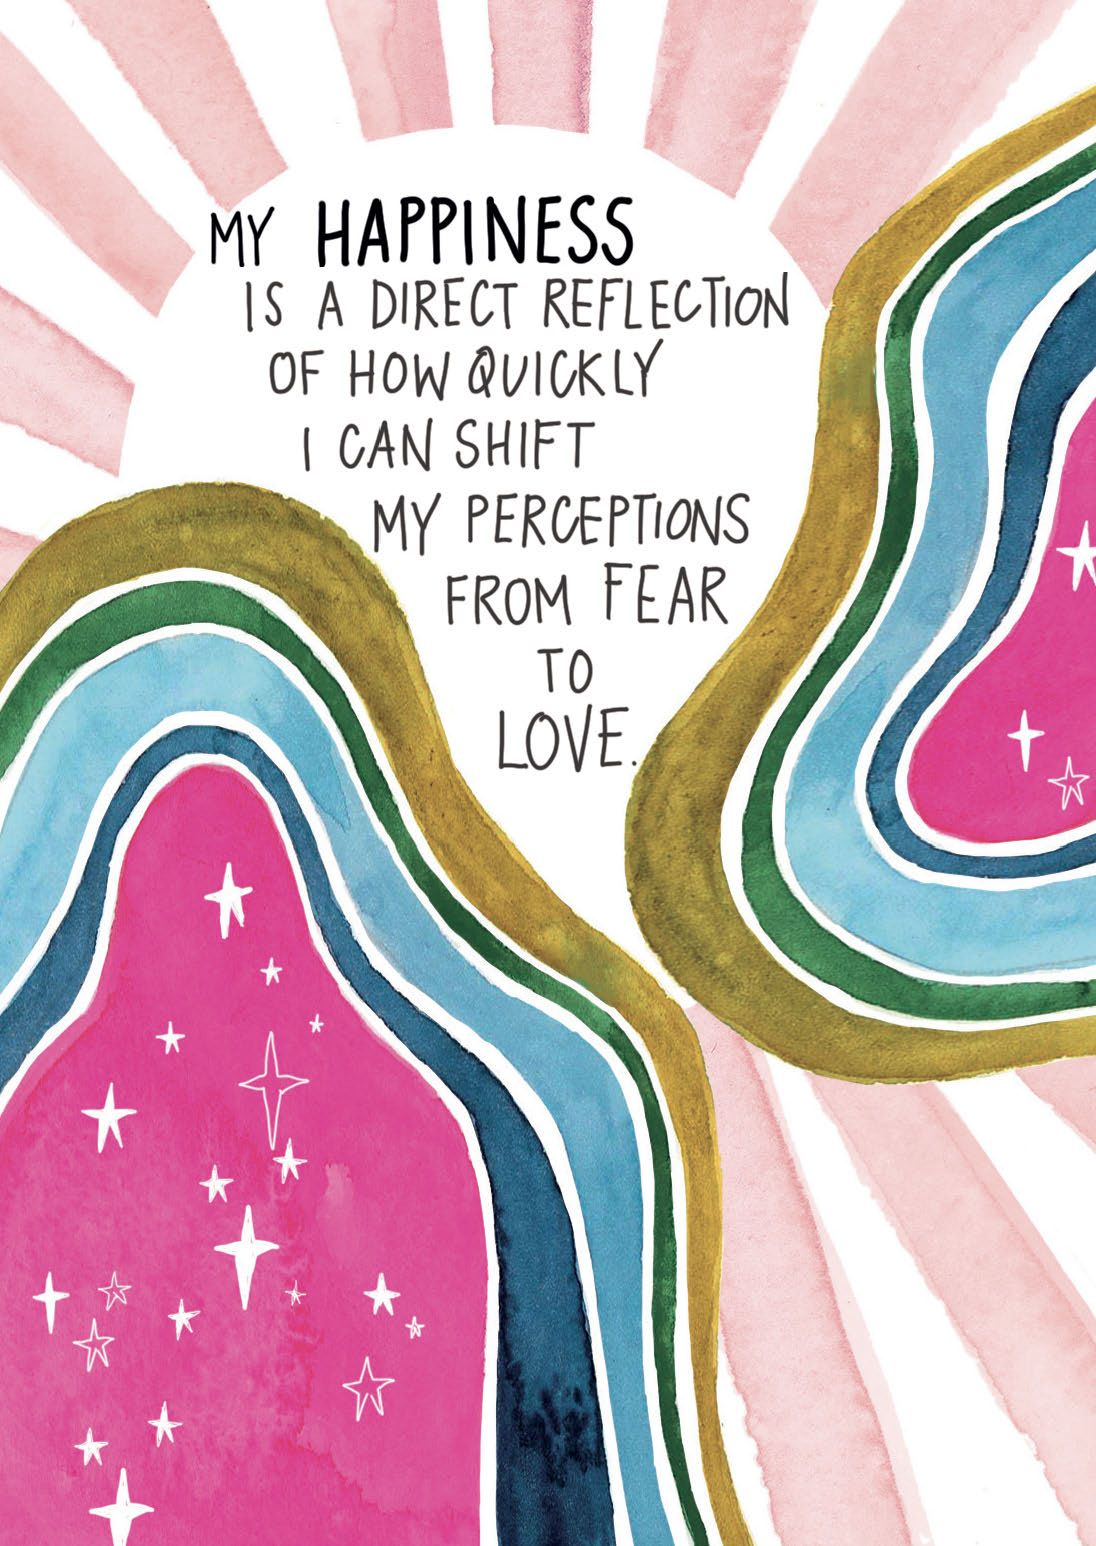 MY HAPPINESS IS A DIRECT REFLECTION OF HOW QUICKLY I CAN SHIFT MY PERCEPTIONS FROM FEAR TO LOVE.